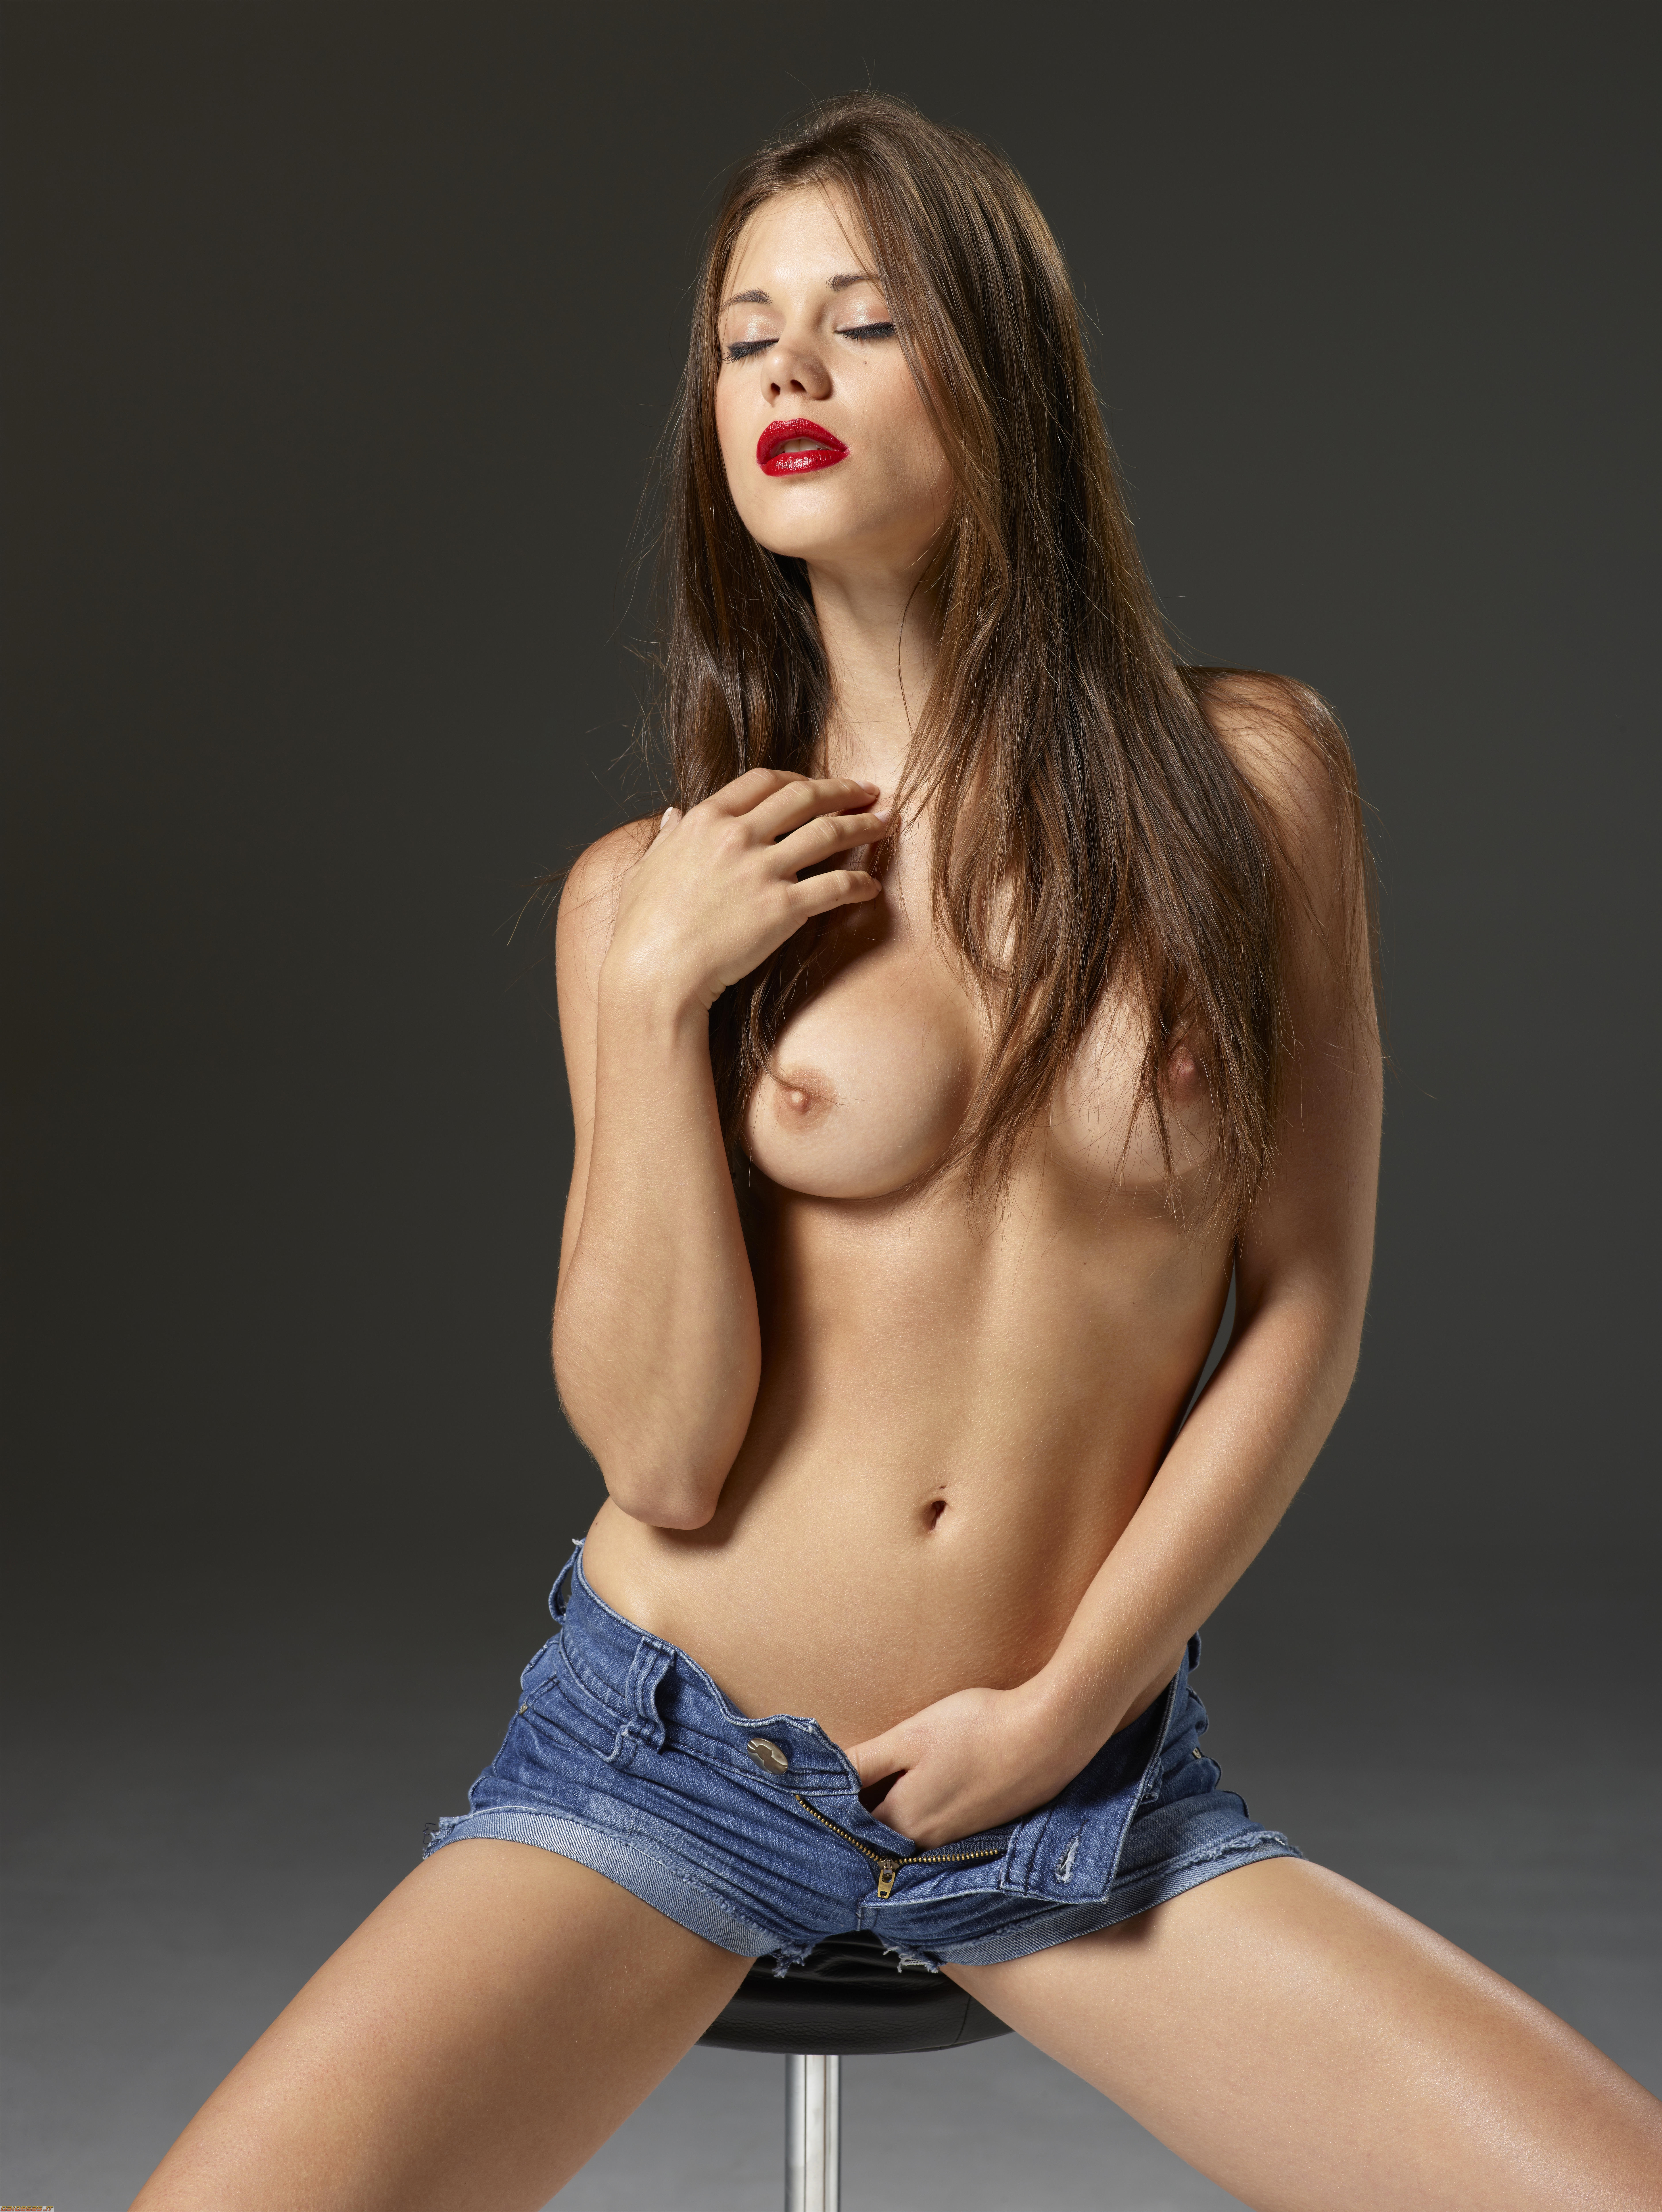 caprice resolution nude Of super high